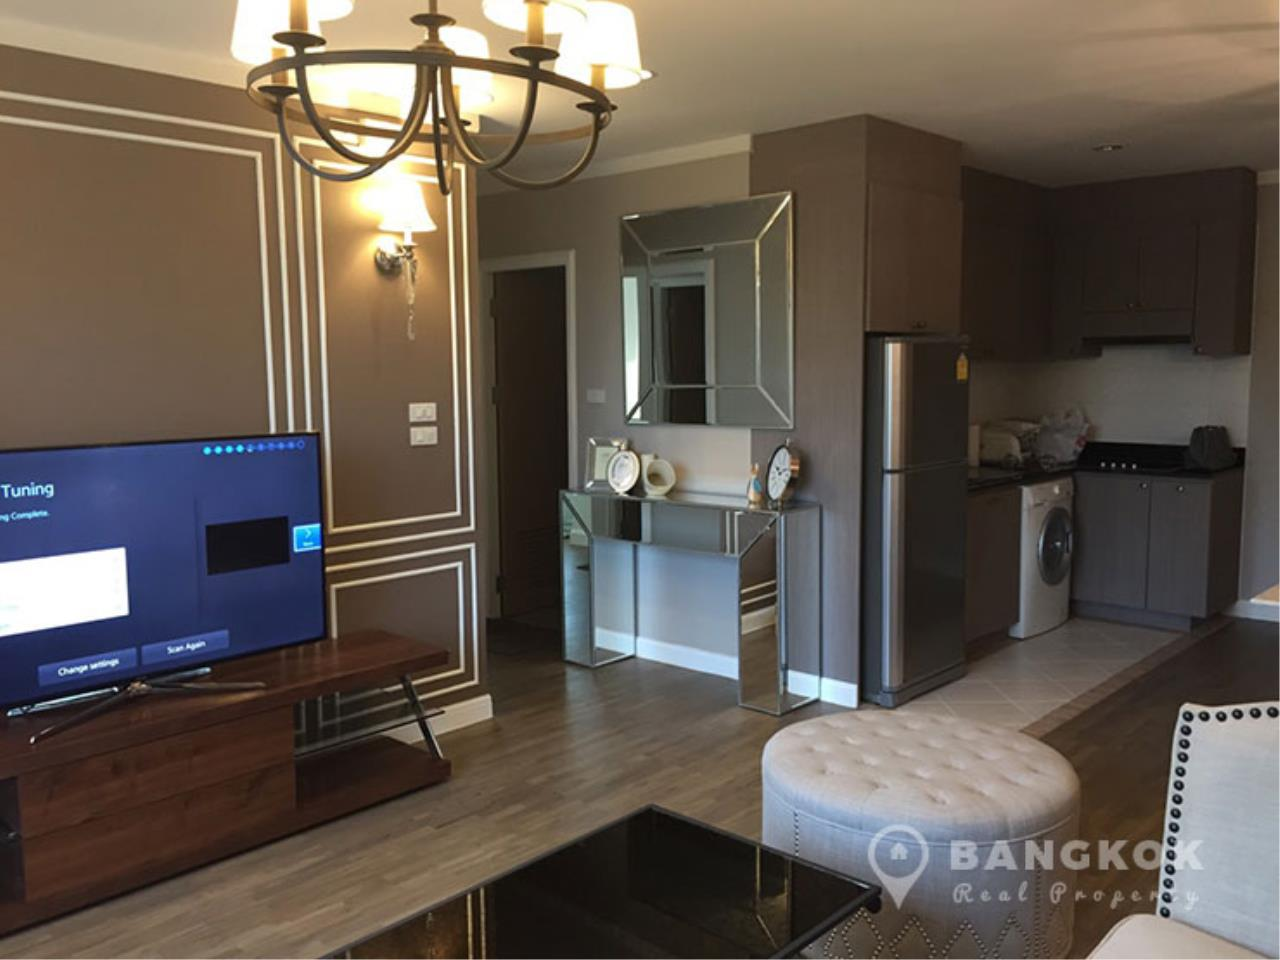 Bangkok Real Property Agency's Baan Siri Yenakard | Spacious Renovated 2 Bed 2 Bath near MRT  2